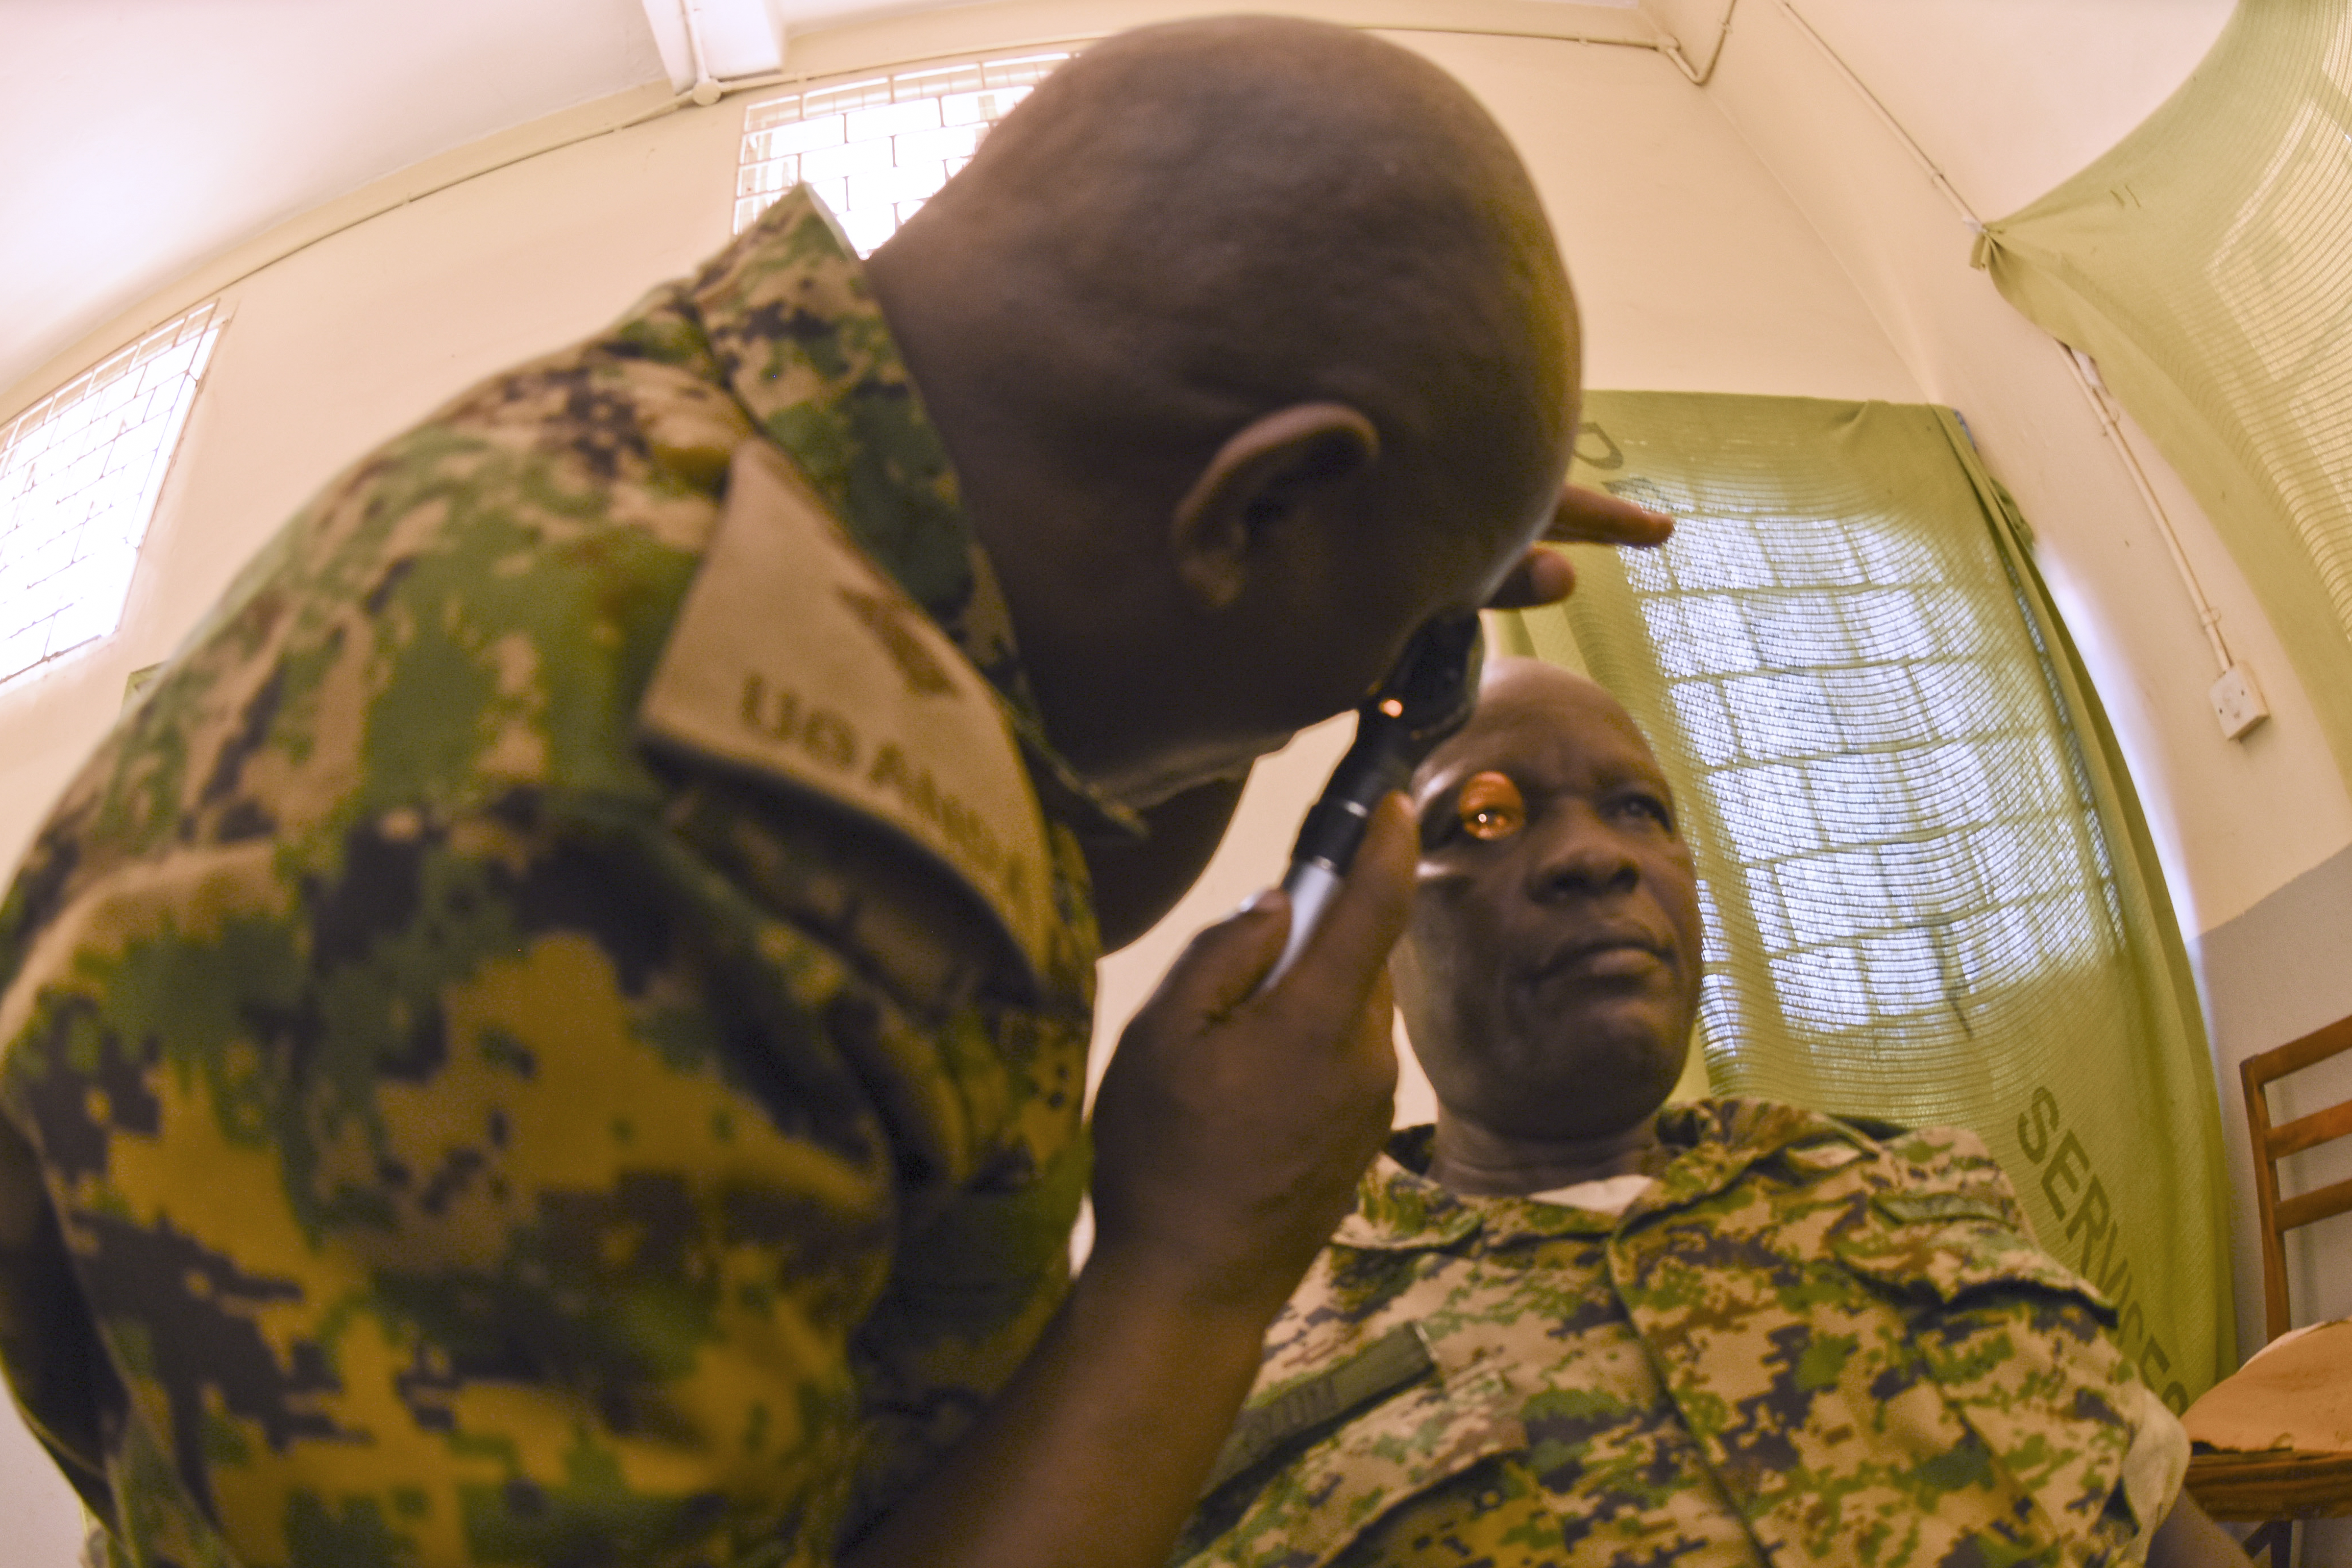 Lt. Jarvis Amagara Muhairwe, ophthalmologist, examines a UPDF soldier during MEDRETE 15-4 on September 21, 2015 in Jinja, Uganda.  This exercise focused on exchange of best practices strengthening U.S. strategic partnerships with UPDF to enhance readiness and interoperability. (U.S. Air Force photo by Master Sgt. Charlene M. Spade)